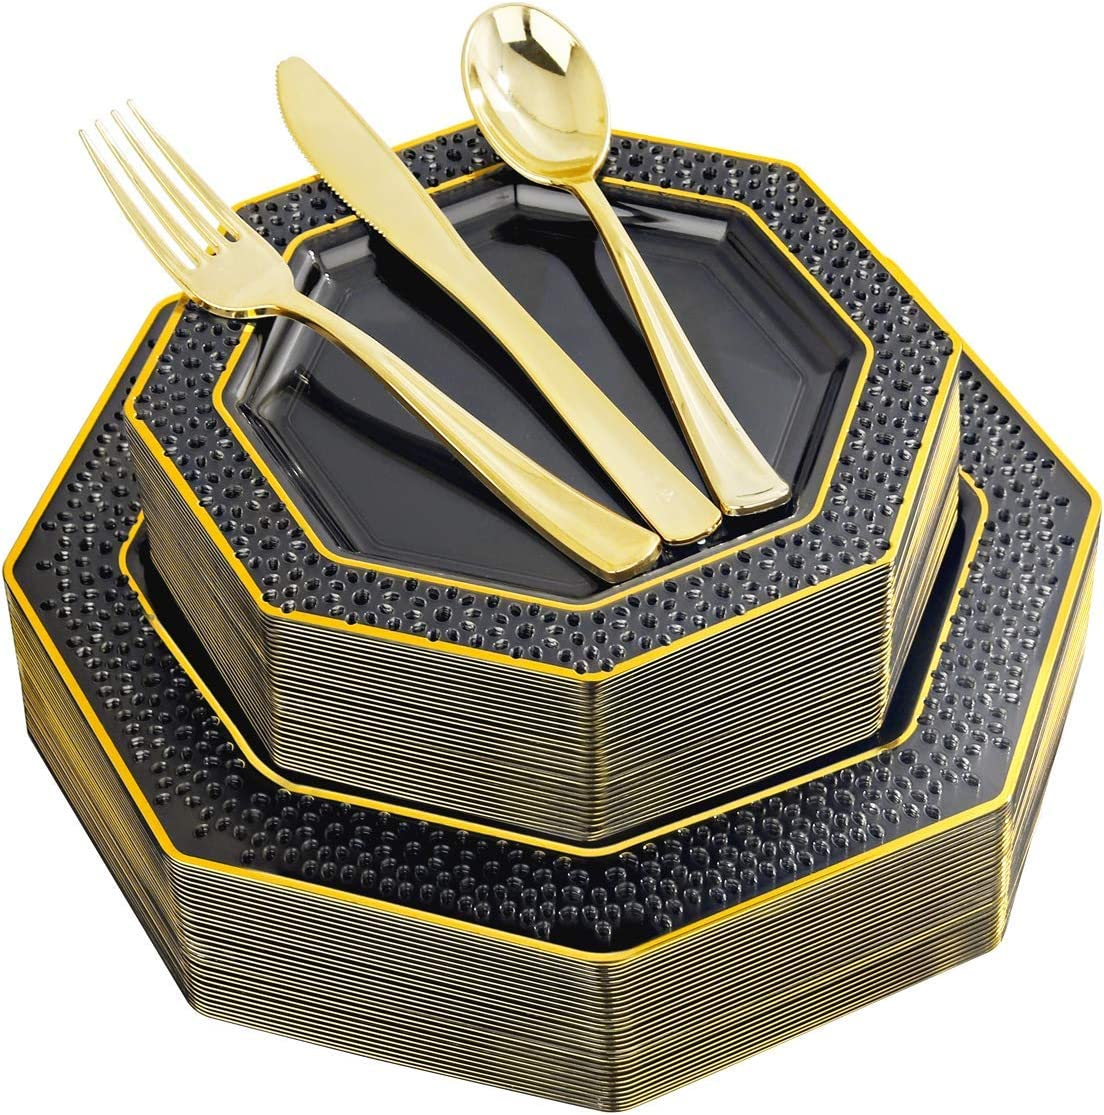 I00000 Popular brand in the world 150 Pieces Black Gold Plastic Si Limited price sale Disposable Plates